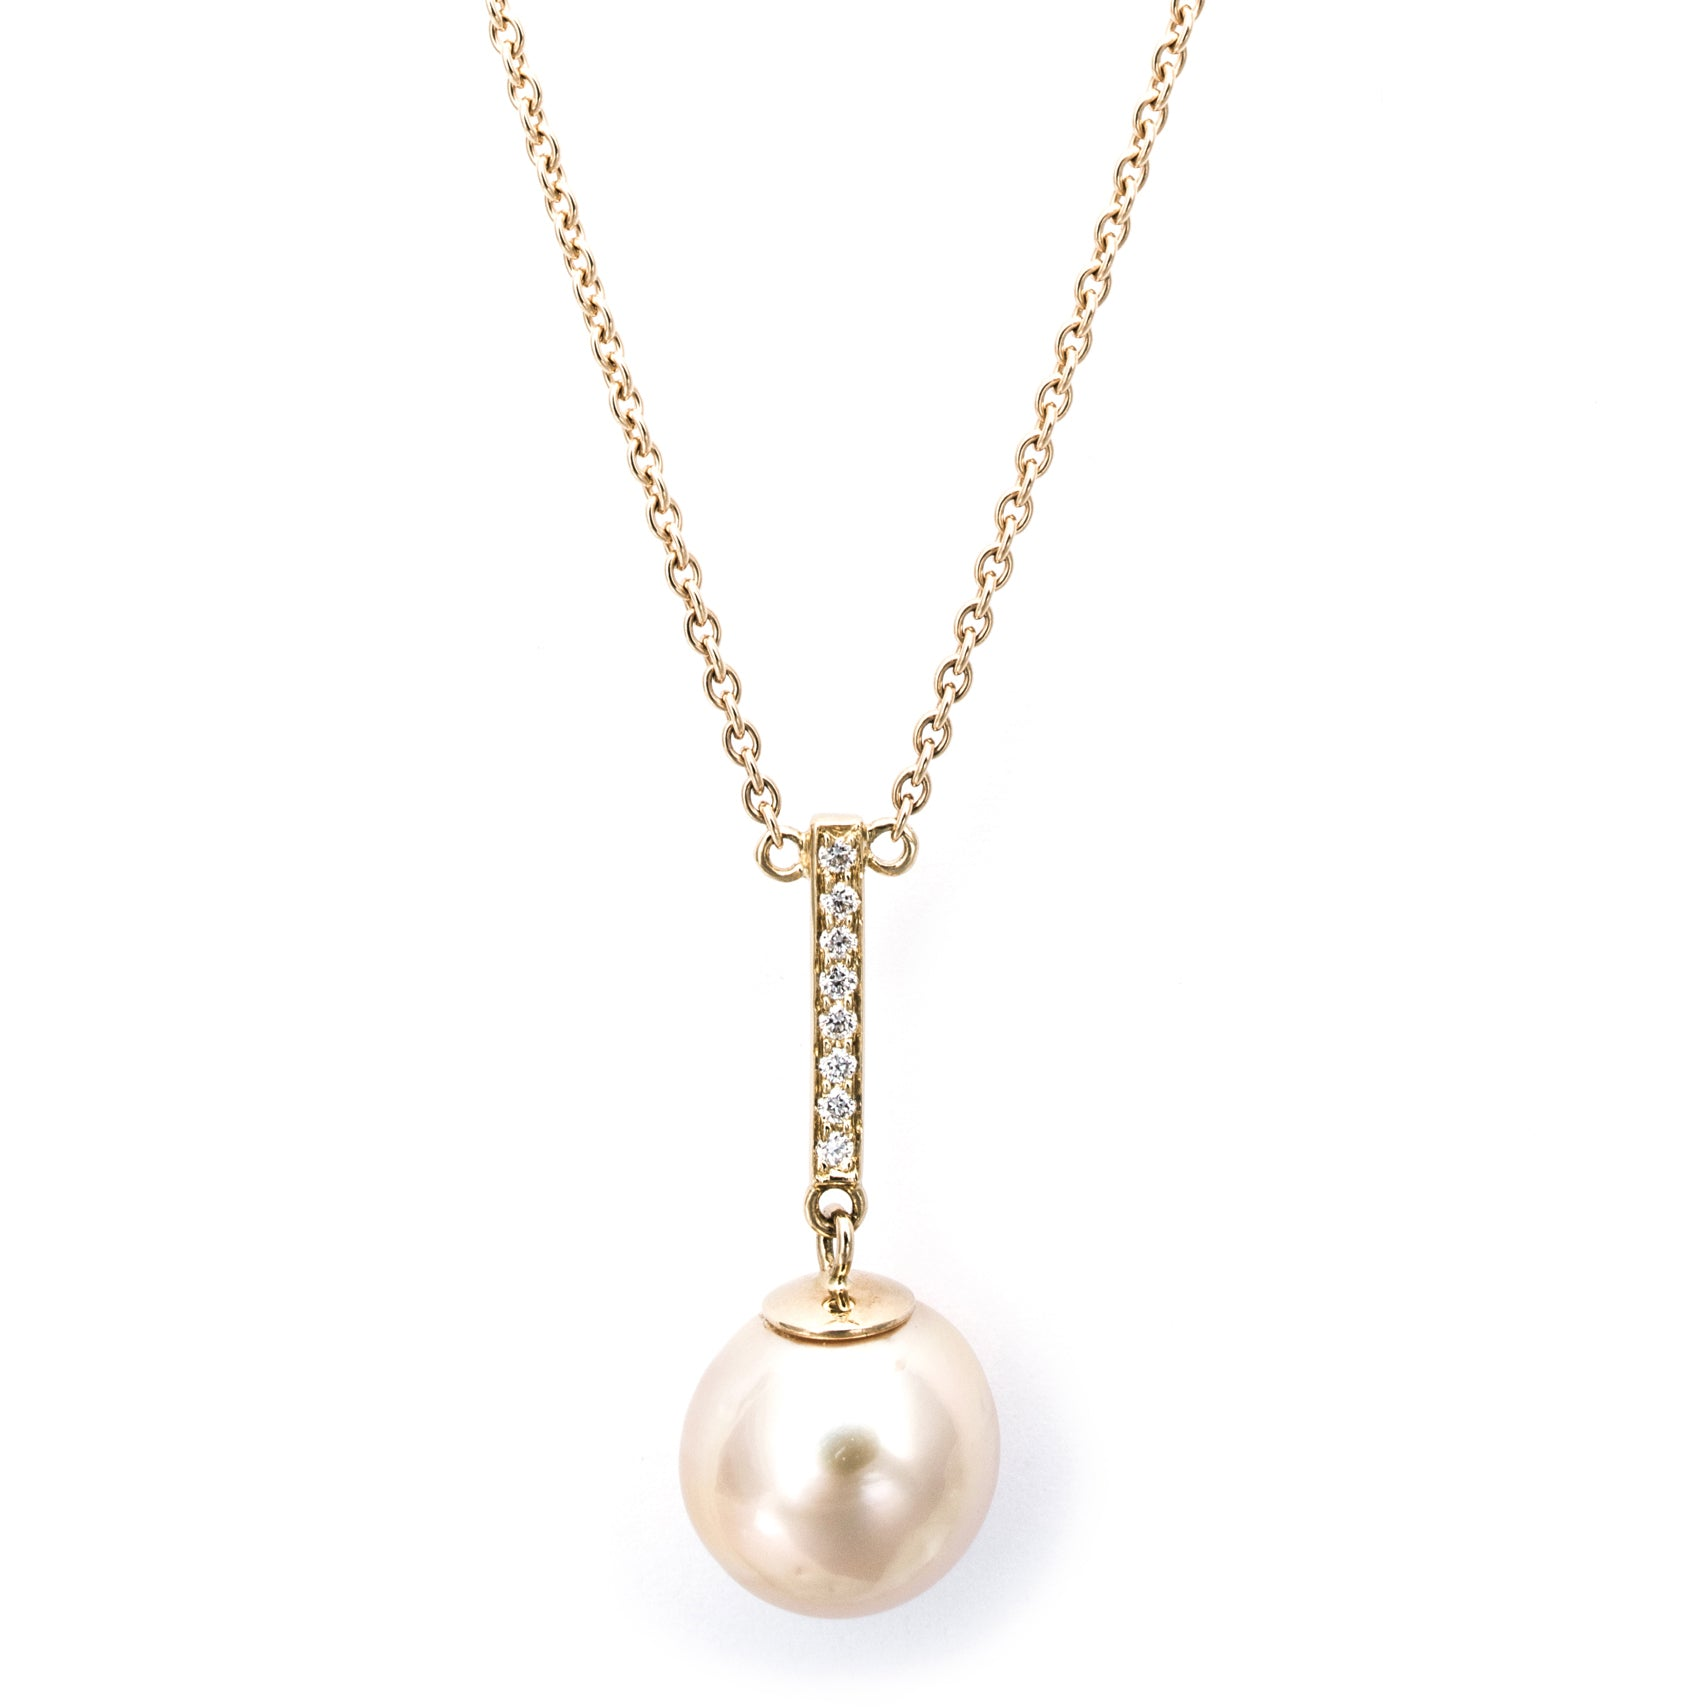 'Pearl Wonder' - Gold necklace with golden pearl and diamonds